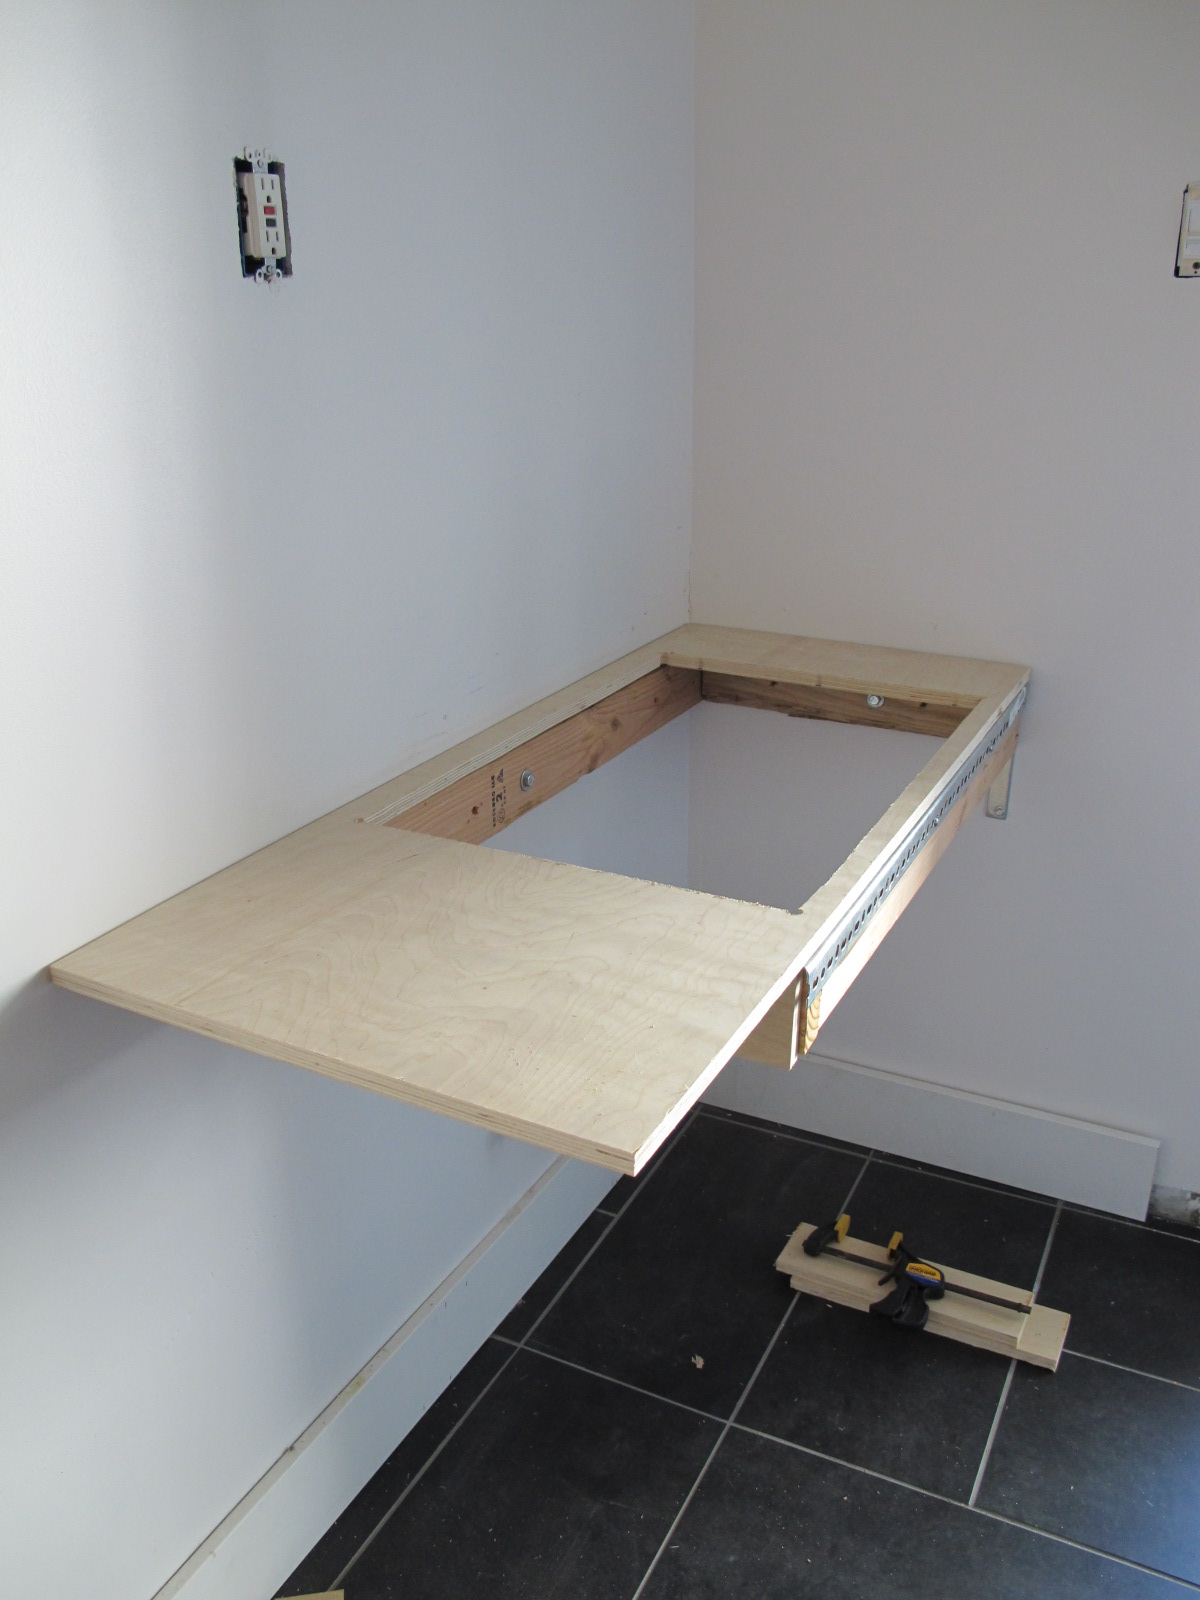 Floating Sink : Tyler started the floating sink by mounting a 2 x 4 wood box to the ...